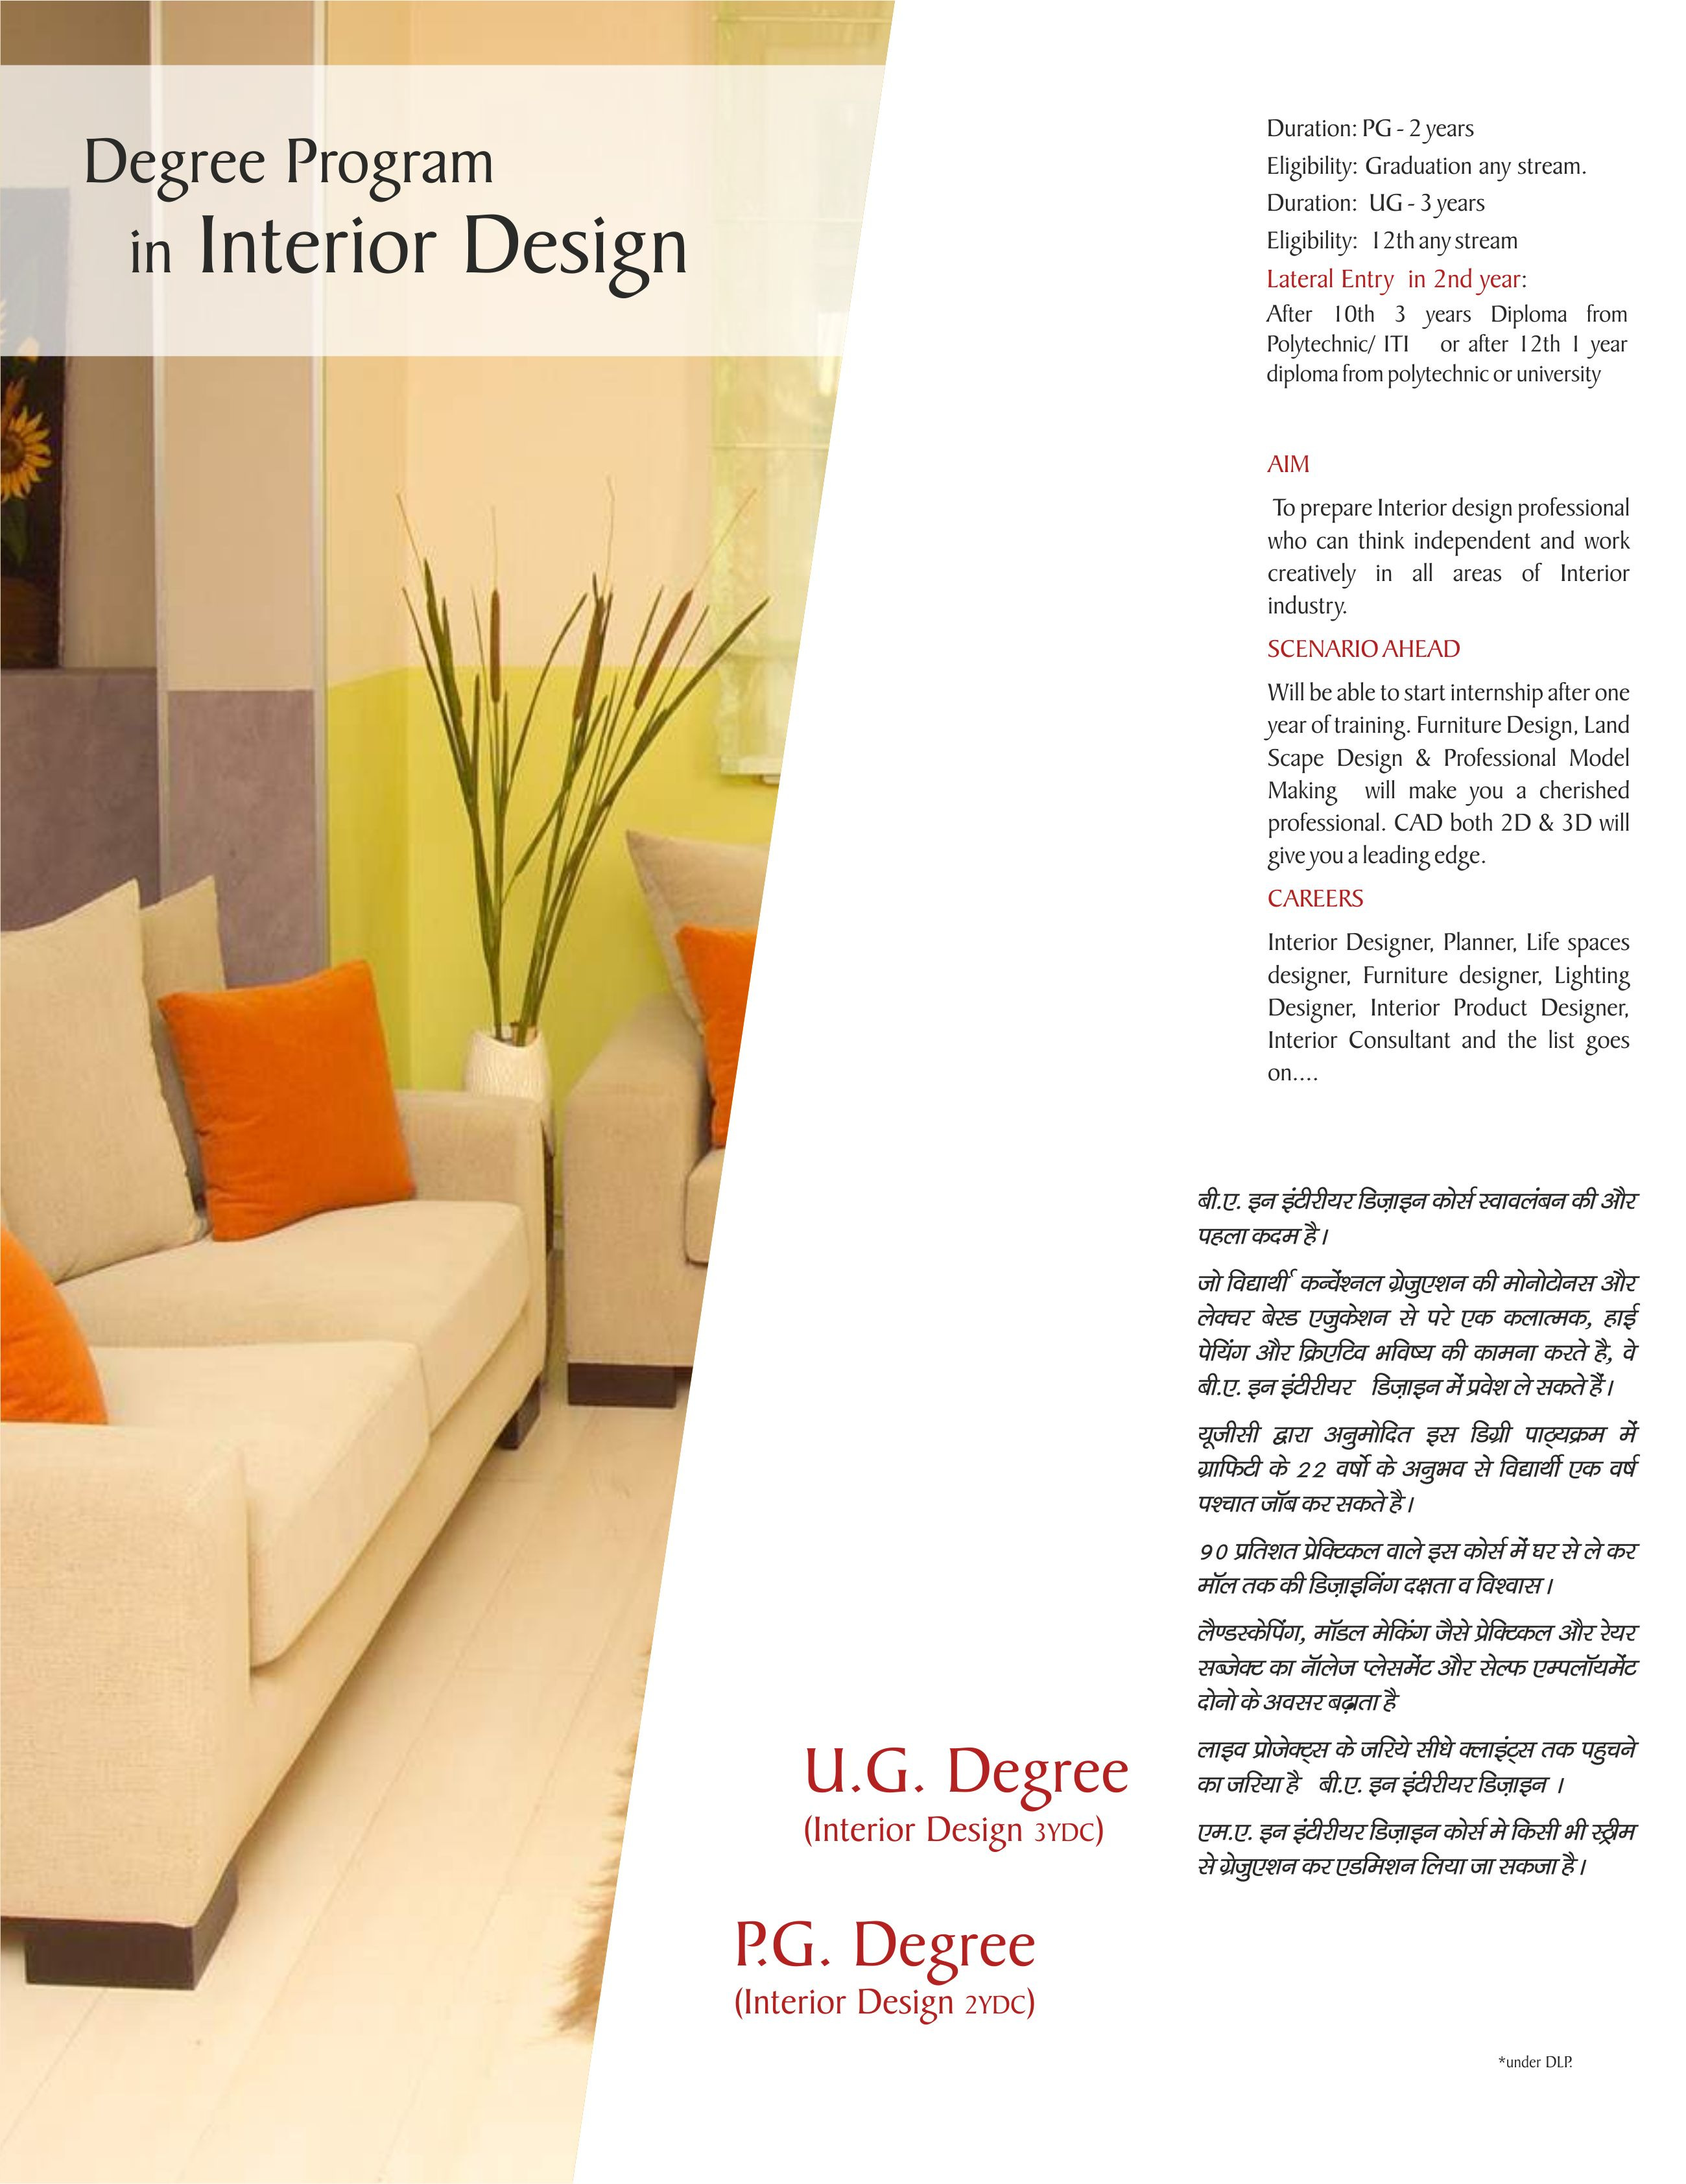 Graffiti Institute Of Fashion Technology Courses In Studies With How To Start Career Interior Design